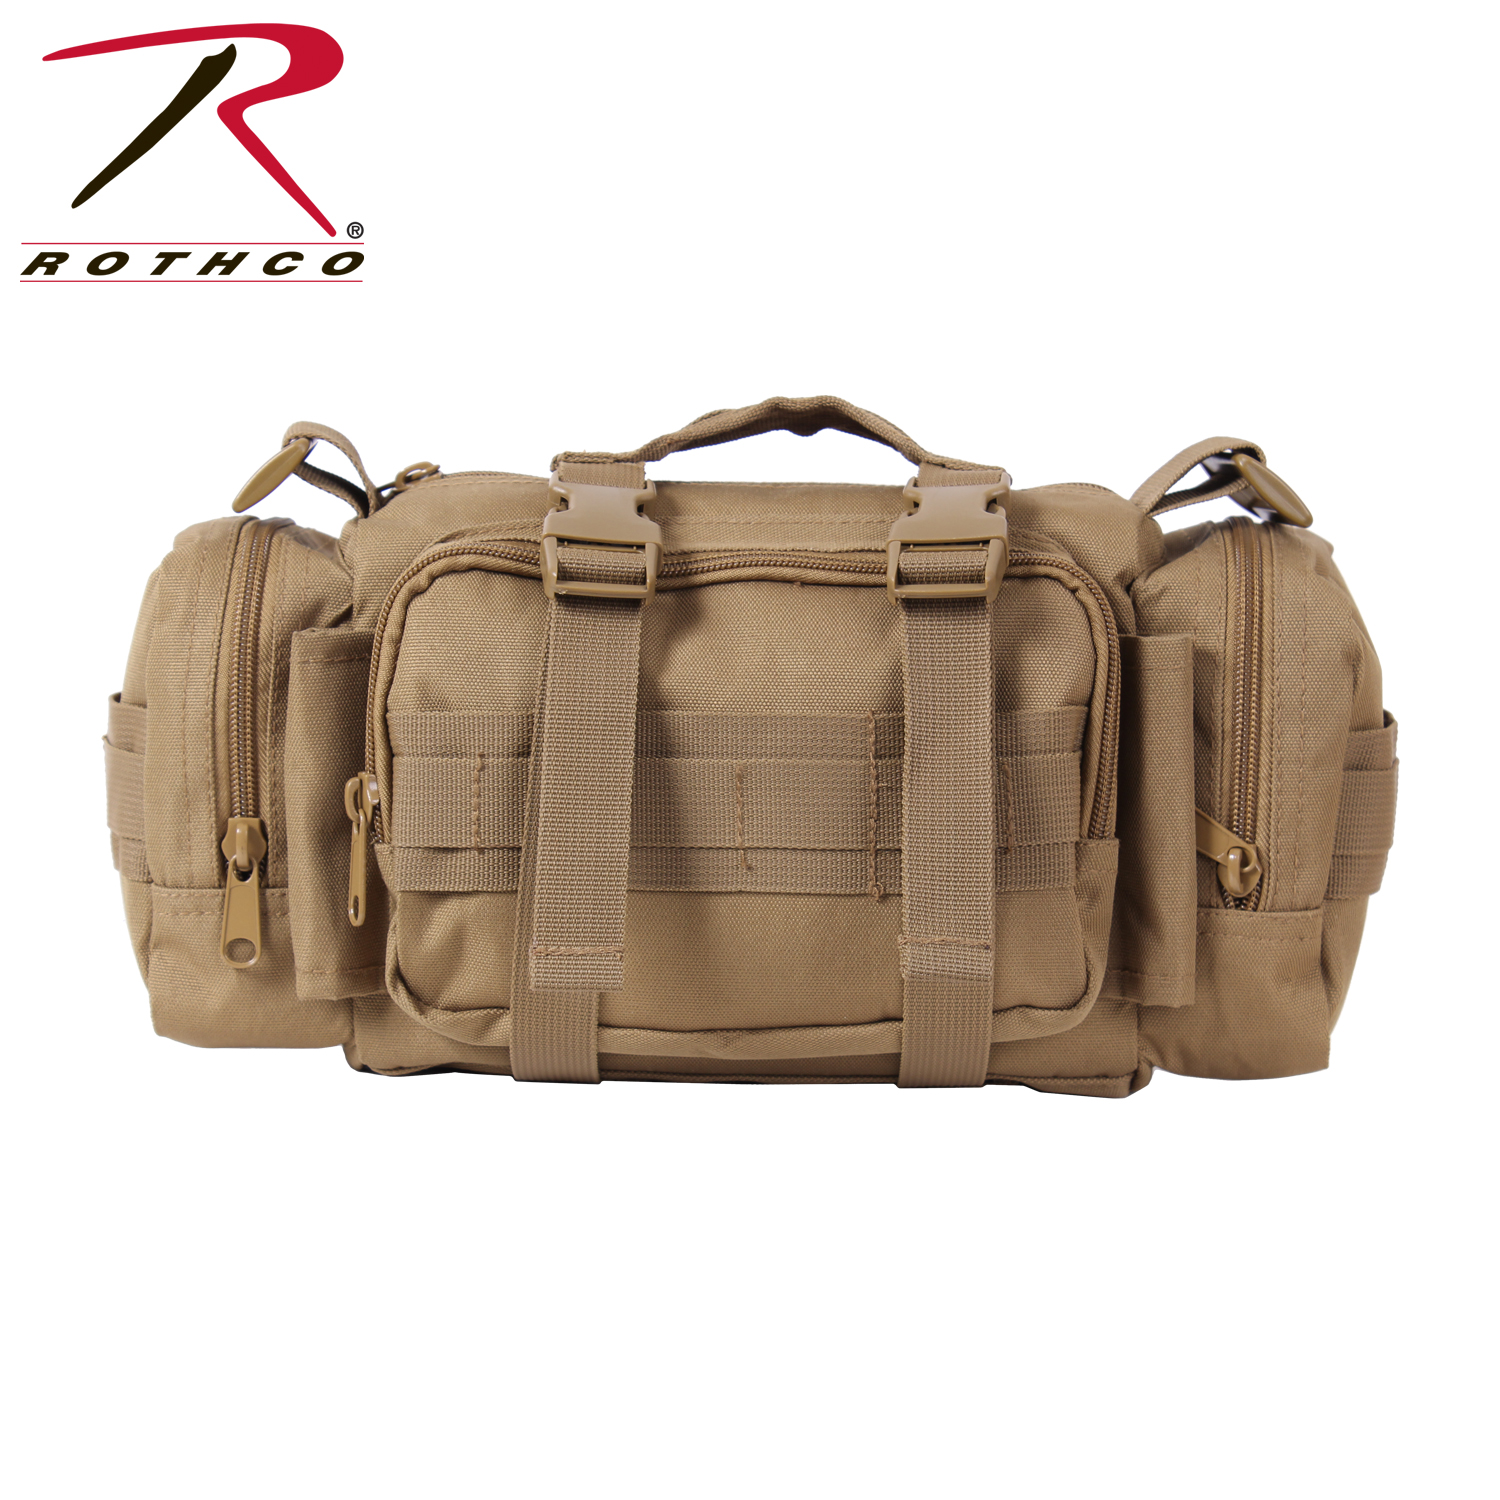 Fast Access Tactical Trauma First Aid Kit (Color: Coyote Brown)